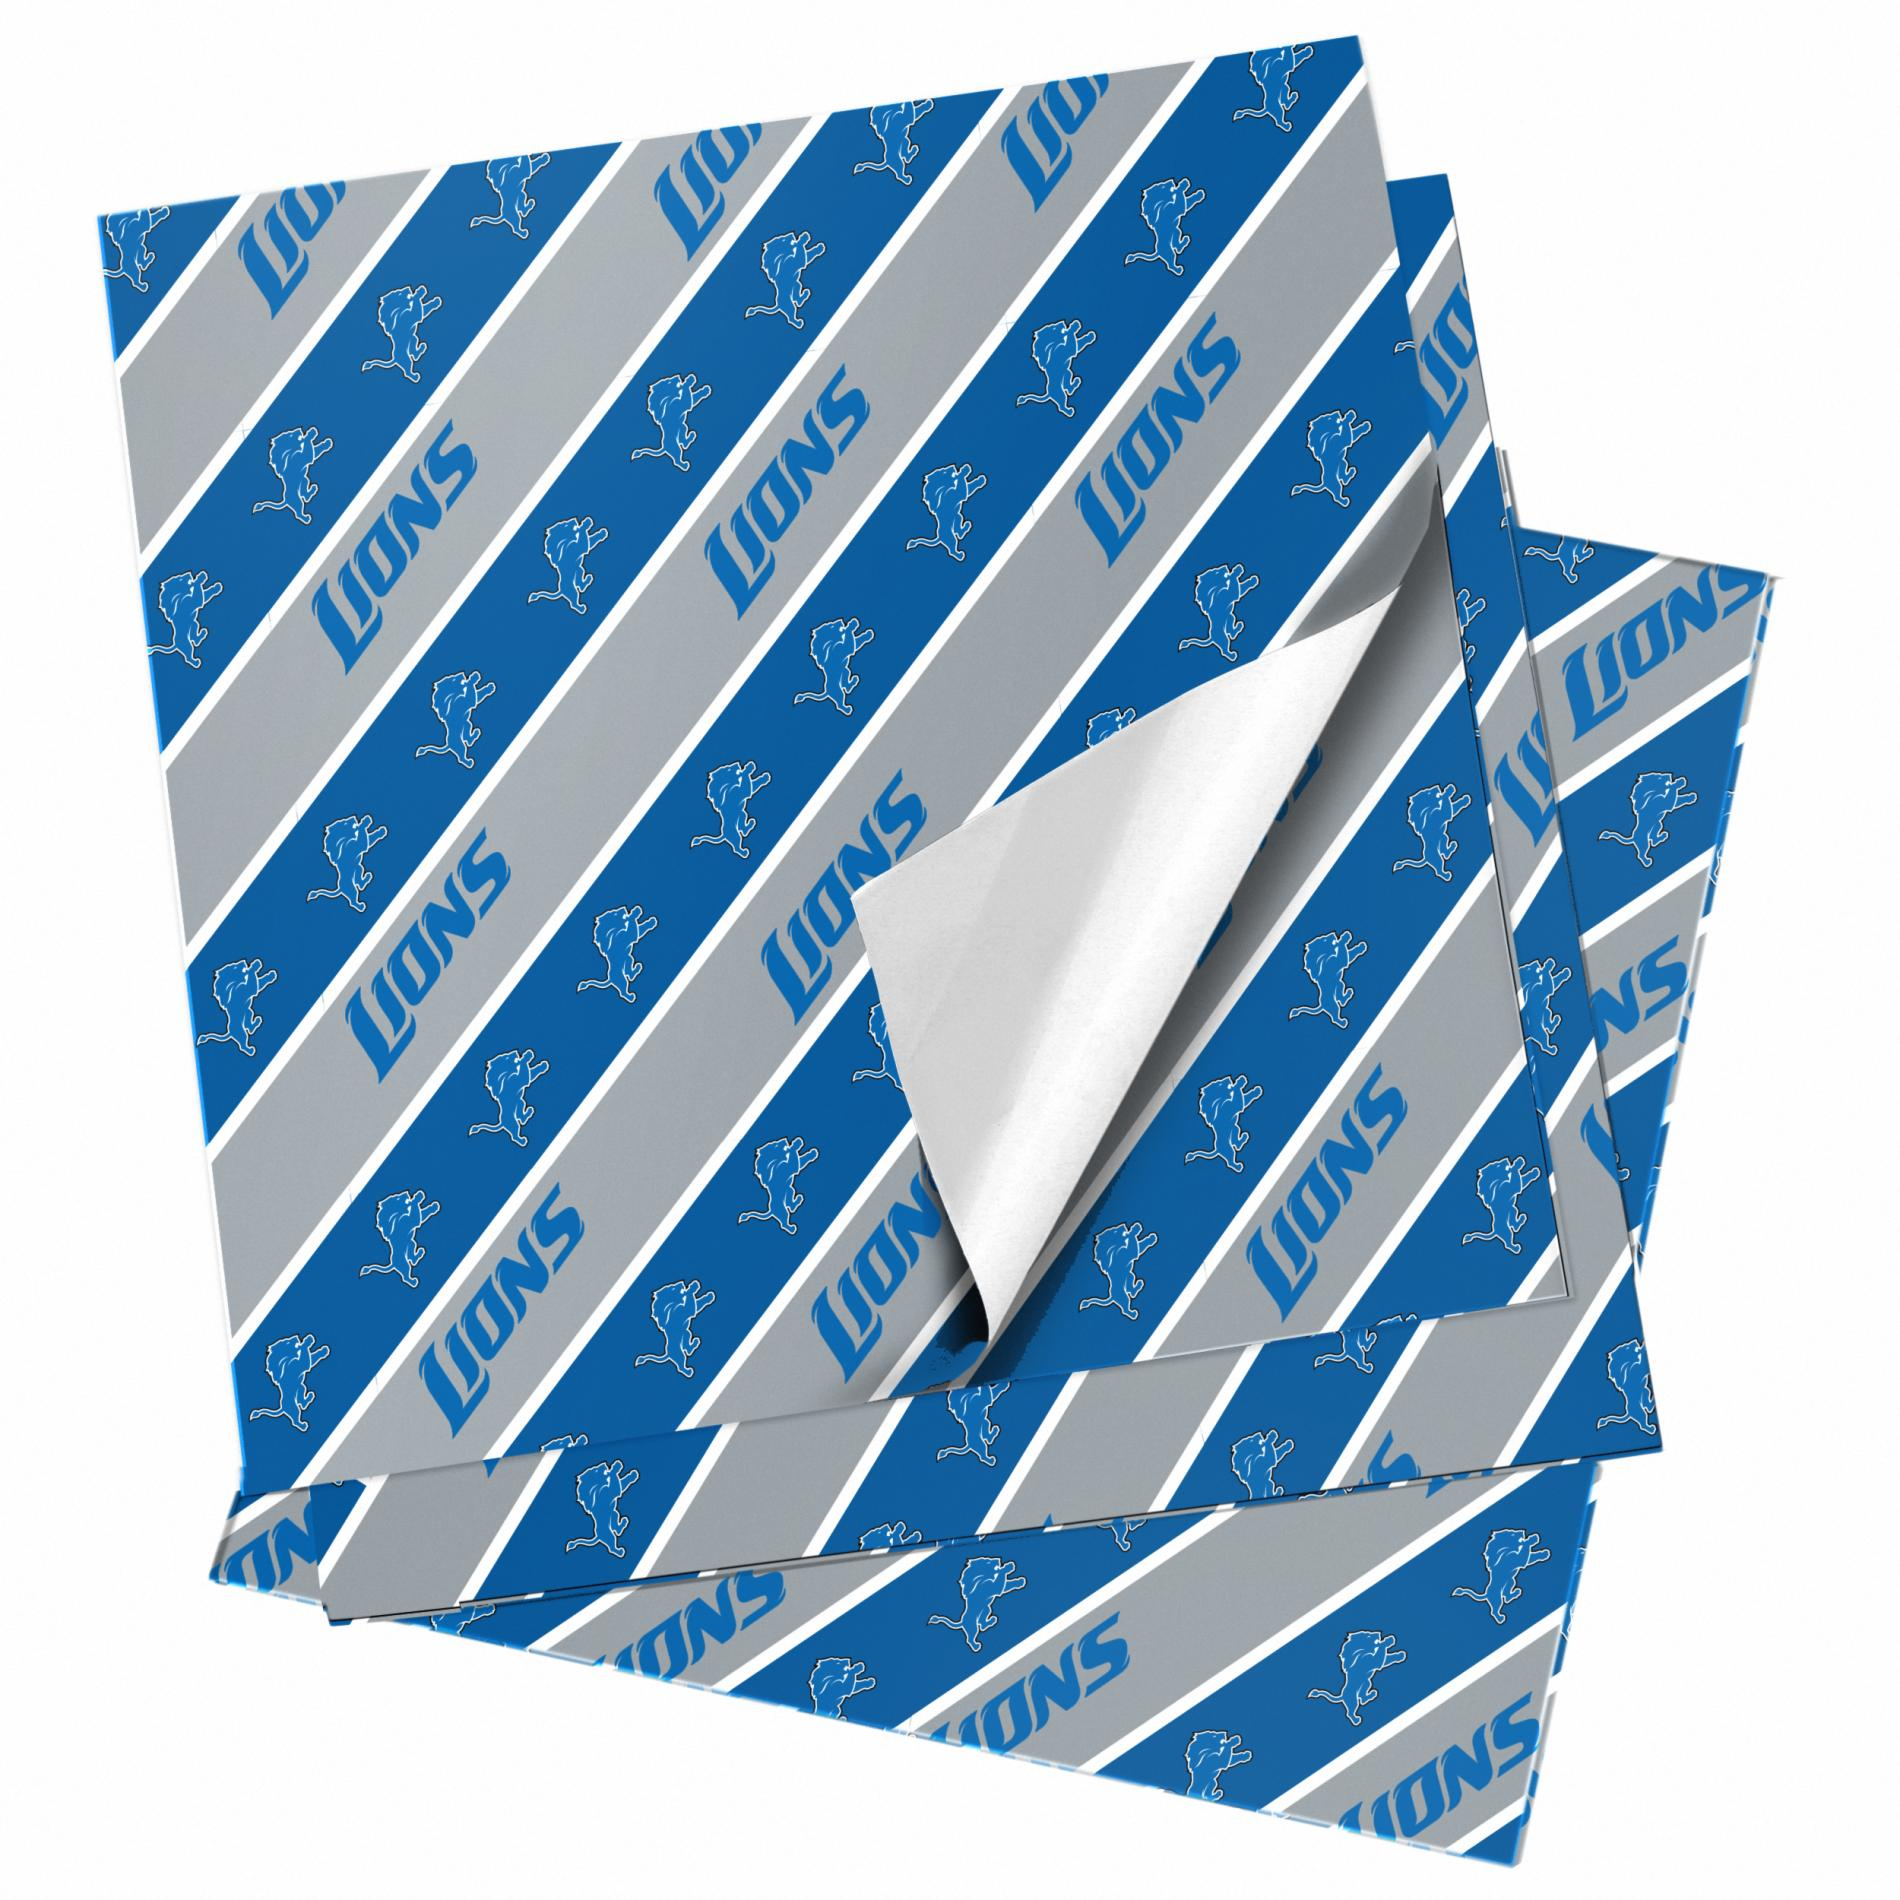 NFL Folded Gift Wrapping Paper - Detroit Lions im test